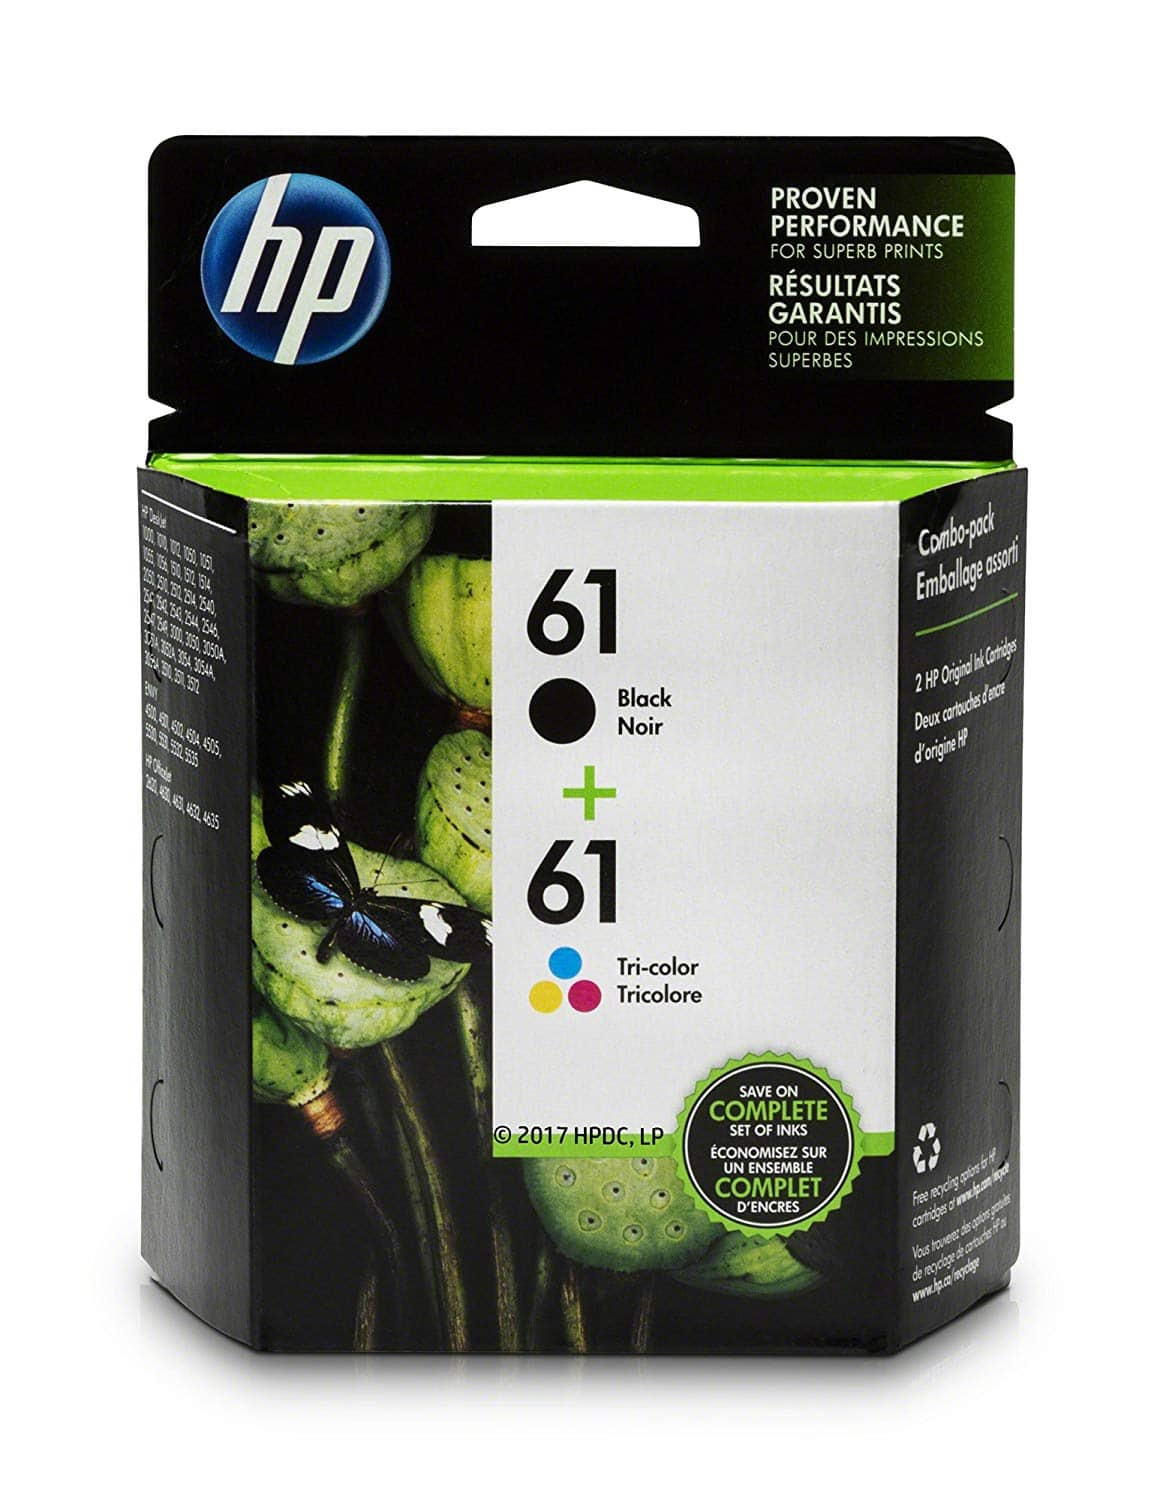 HP 61, 2 Ink Cartridges, Black, Tri-color for $39.99 @Woot